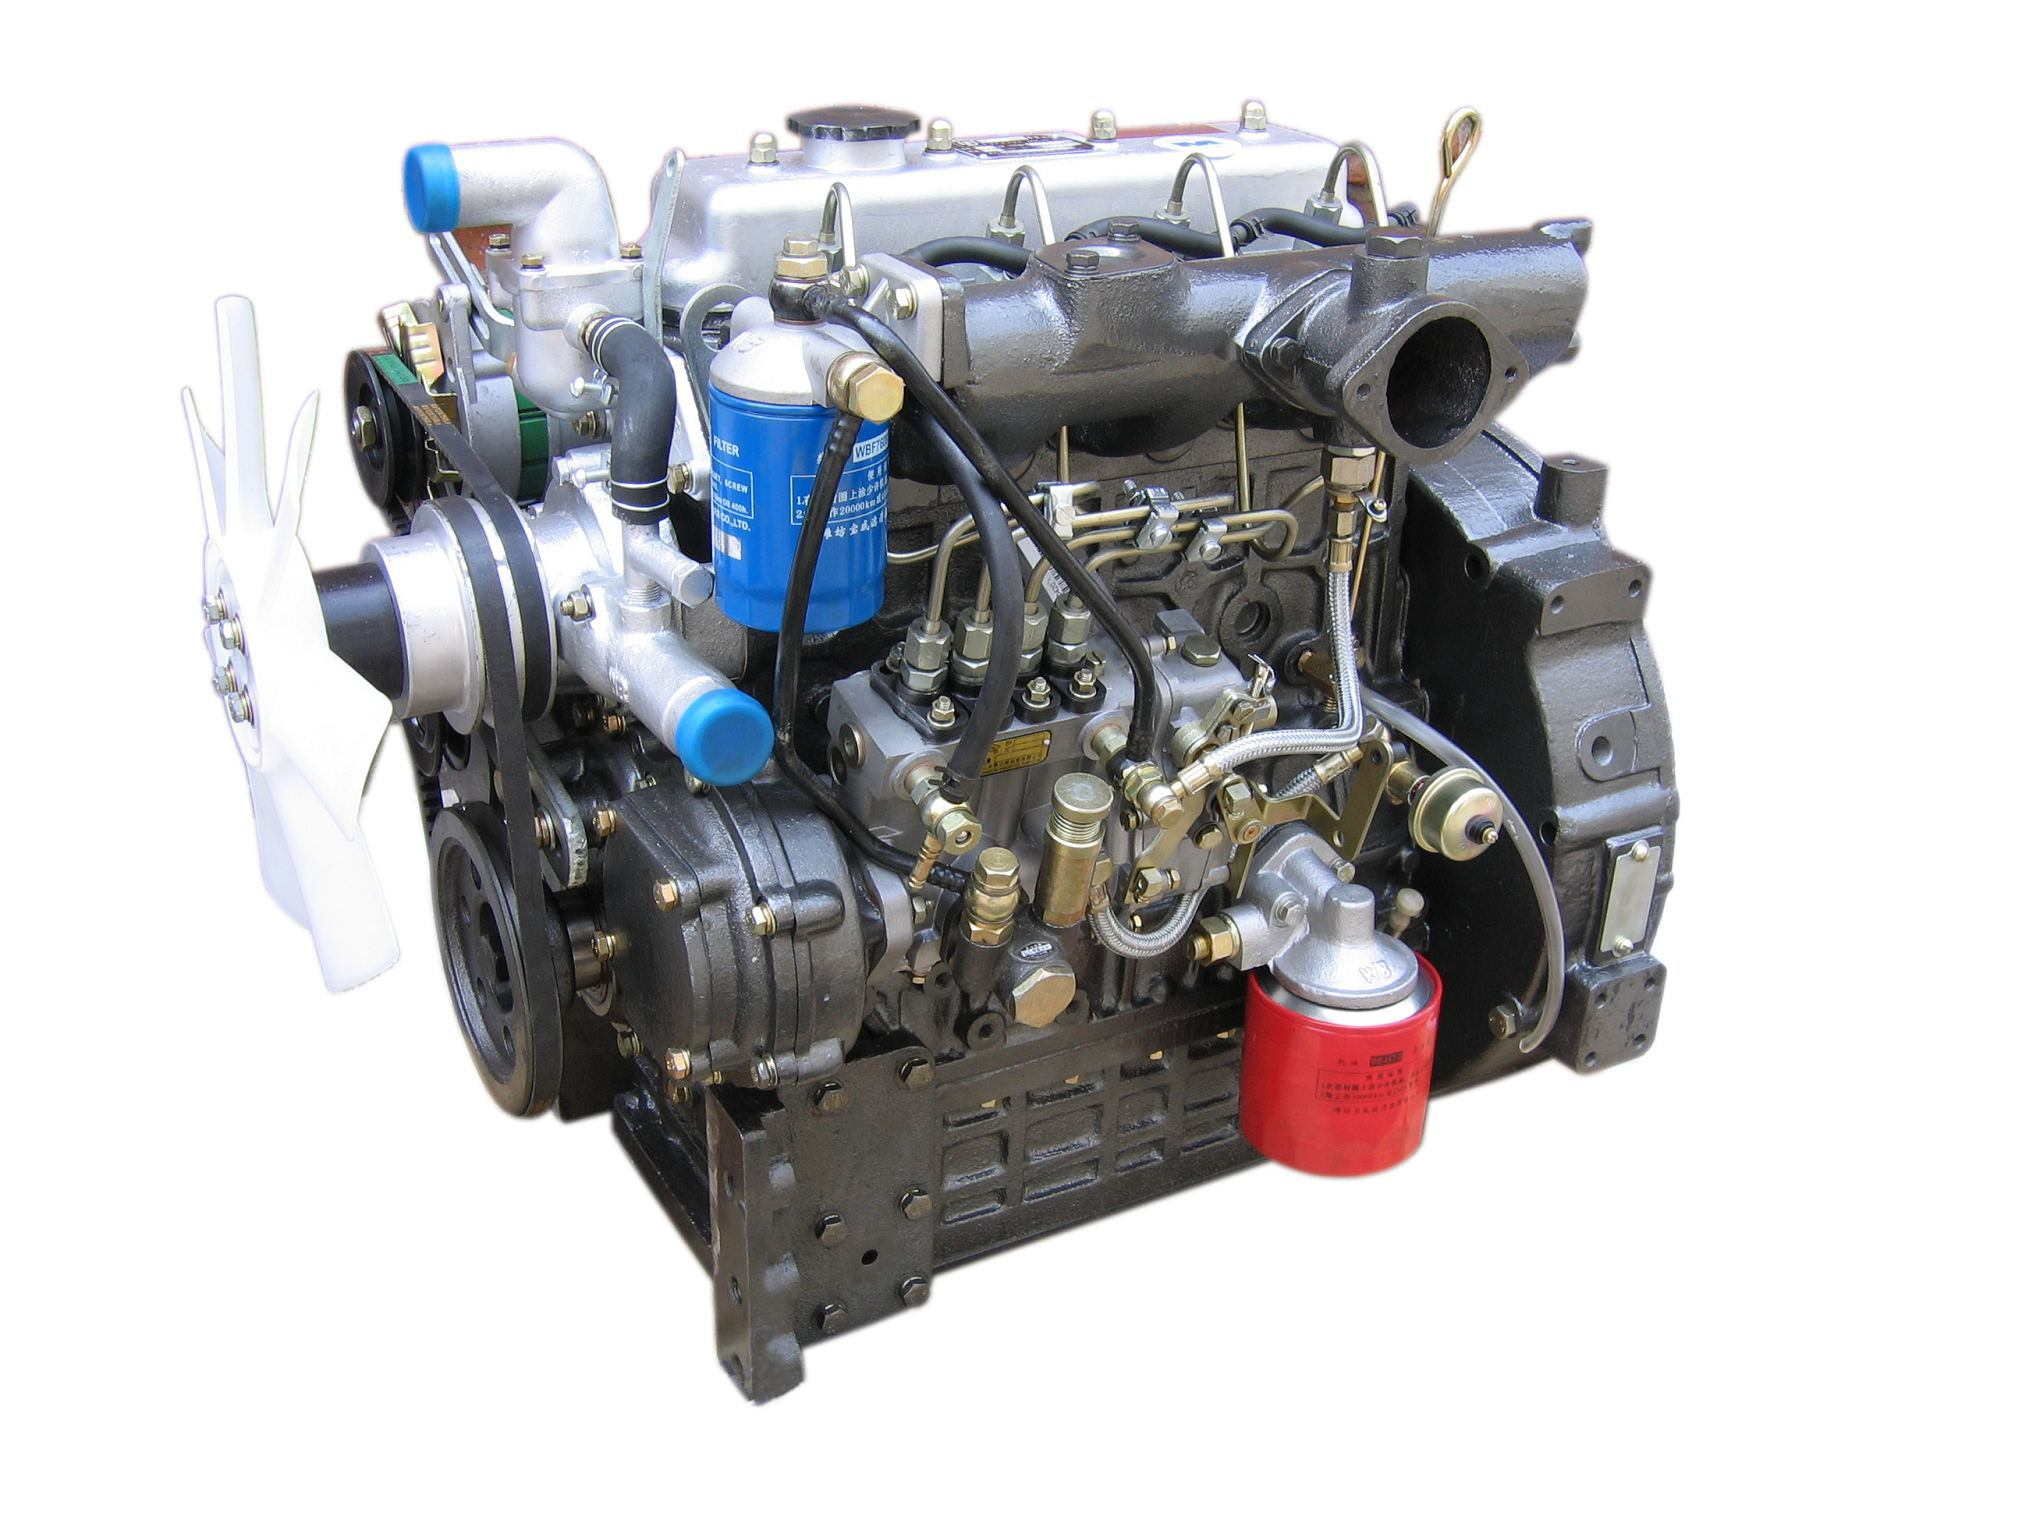 30-45 HP Diesel Engines for Middle-Sized Tractors